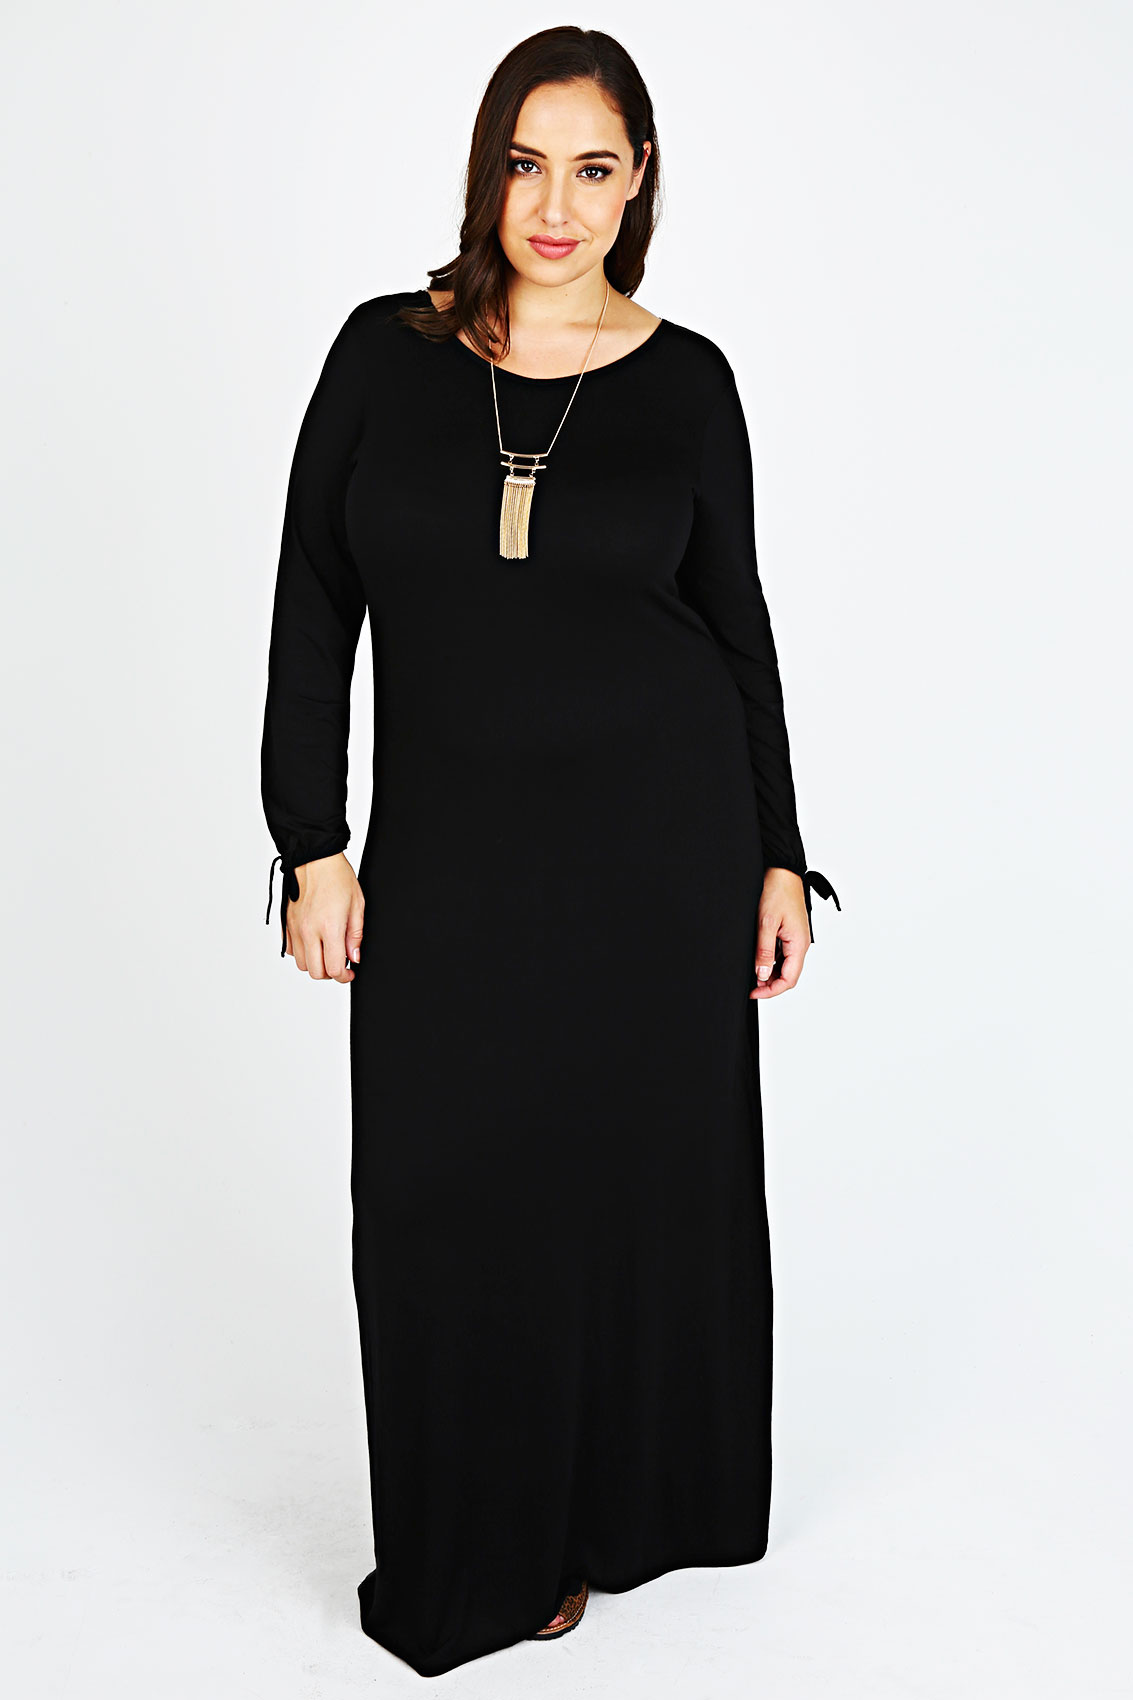 Forever 21 has a Dress for every occasion! Shop party dresses for going out, sweater dresses, floral minis, white maxis, wedding, bridesmaid, and occasion dresses. Keeping it casual? Find T-Shirt dresses and overall dresses too!